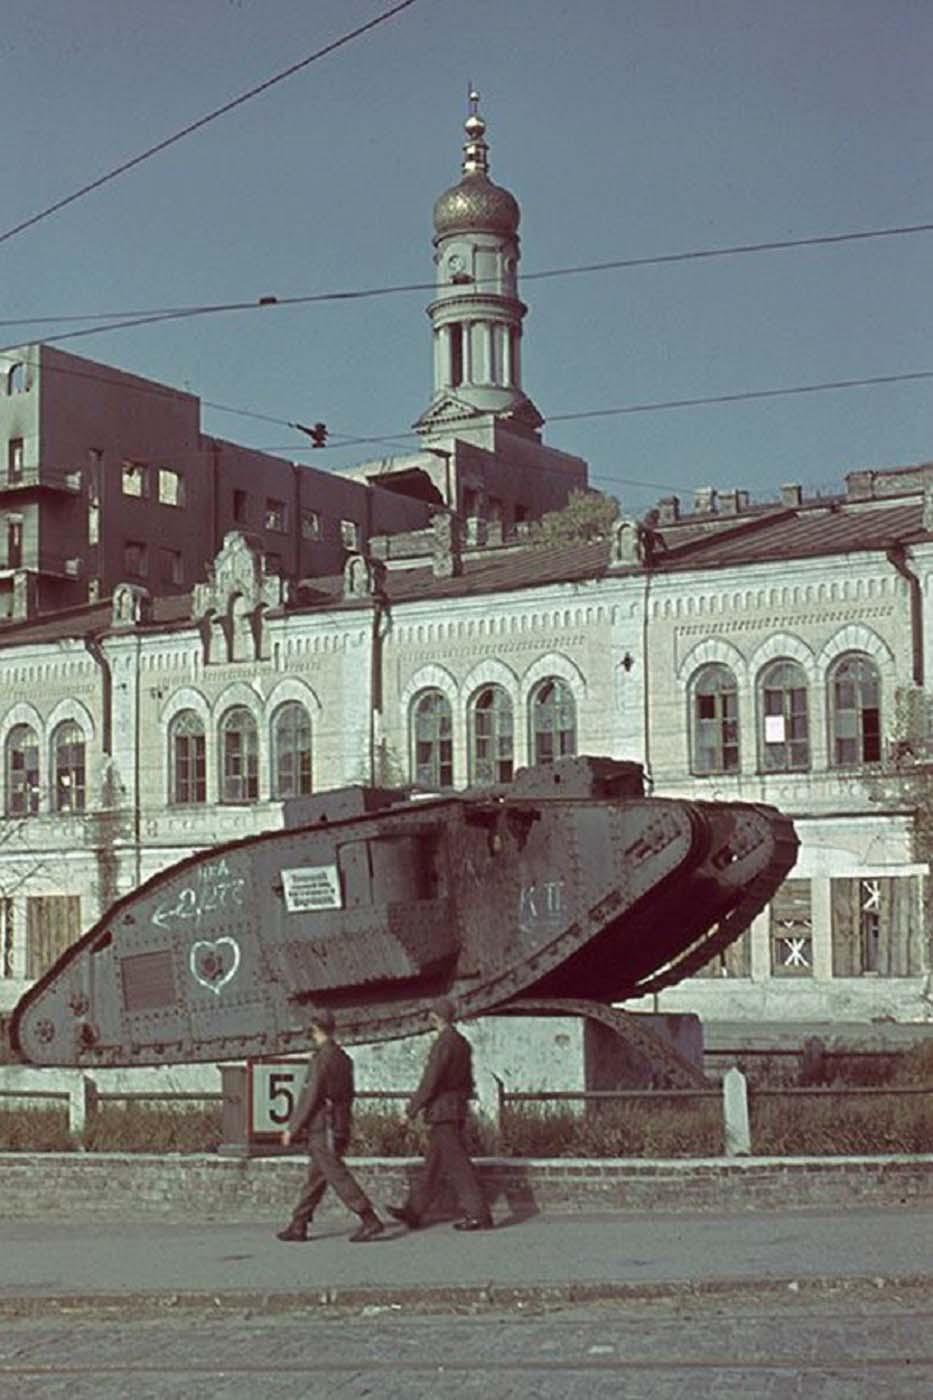 British Mark V tank on display at Constitution Square in Kharkov.